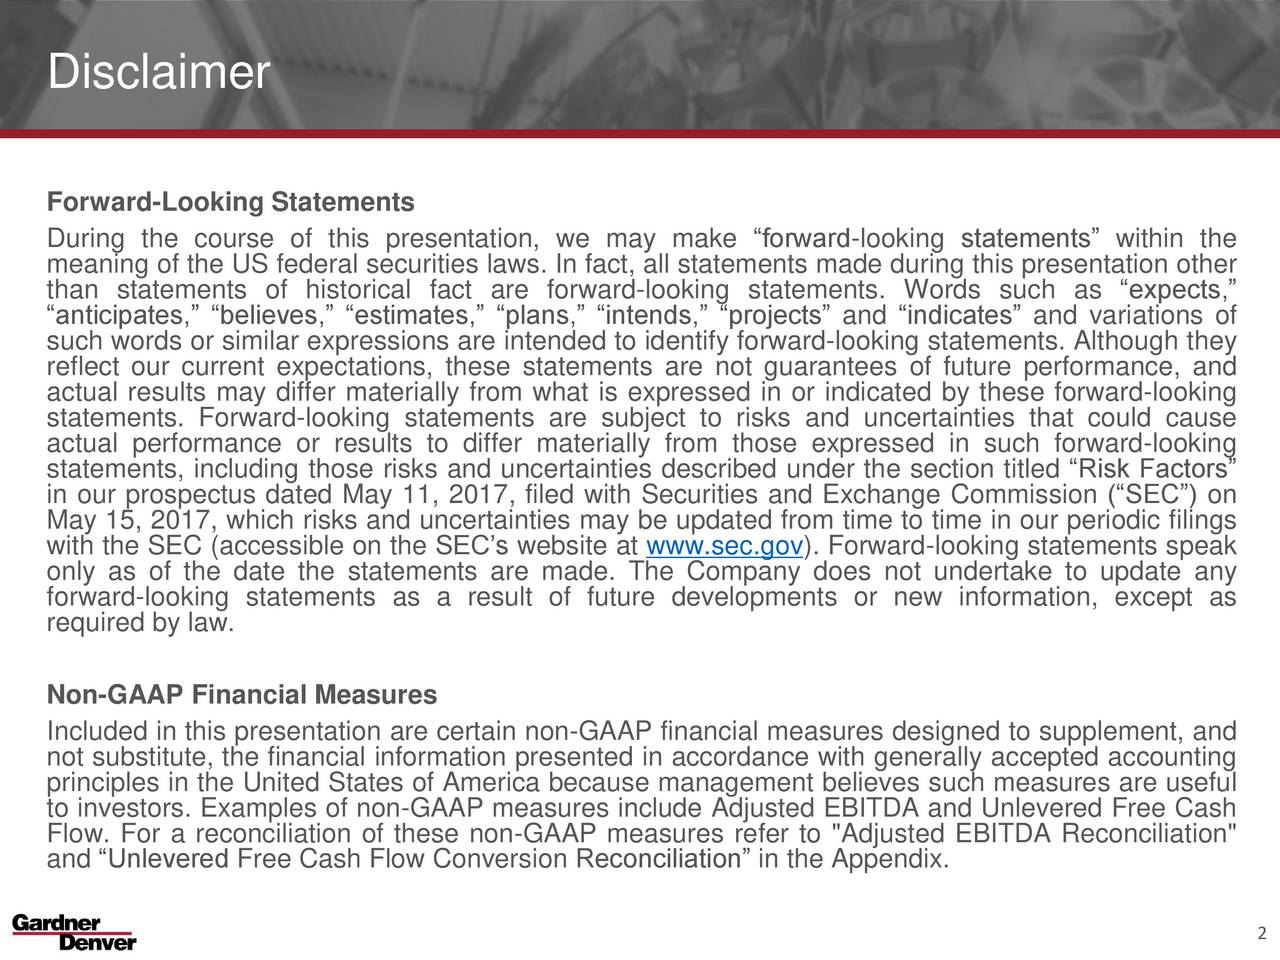 """Forward-Looking Statements During the course of this presentation, we may make forward-looking statements within the meaning of the US federal securities laws. In fact, all statements made during this presentation other than statements of historical fact are forward-looking statements. Words such as expects, anticipates, believes, estimates, plans, intends, projects and indicates and variations of such words or similar expressions are intended to identify forward-looking statements. Although they reflect our current expectations, these statements are not guarantees of future performance, and actual results may differ materially from what is expressed in or indicated by these forward-looking actual performance or results to differ materially from those expressed in such forward-looking statements, including those risks and uncertainties described under the section titled Risk Factors in our prospectus dated May 11, 2017, filed with Securities and Exchange Commission (SEC) on May 15, 2017, which risks and uncertainties may be updated from time to time in our periodic filings with the SEC (accessible on the SECs website at www.sec.gov). Forward-looking statements speak only as of the date the statements are made. The Company does not undertake to update any forward-looking statements as a result of future developments or new information, except as required by law. Non-GAAP Financial Measures Included in this presentation are certain non-GAAP financial measures designed to supplement, and not substitute, the financial information presented in accordance with generally accepted accounting principles in the United States of America because management believes such measures are useful to investors. Examples of non-GAAP measures include Adjusted EBITDA and Unlevered Free Cash Flow. For a reconciliation of these non-GAAP measures refer to """"Adjusted EBITDA Reconciliation"""" and Unlevered Free Cash Flow Conversion Reconciliation in the Appendix. 2"""